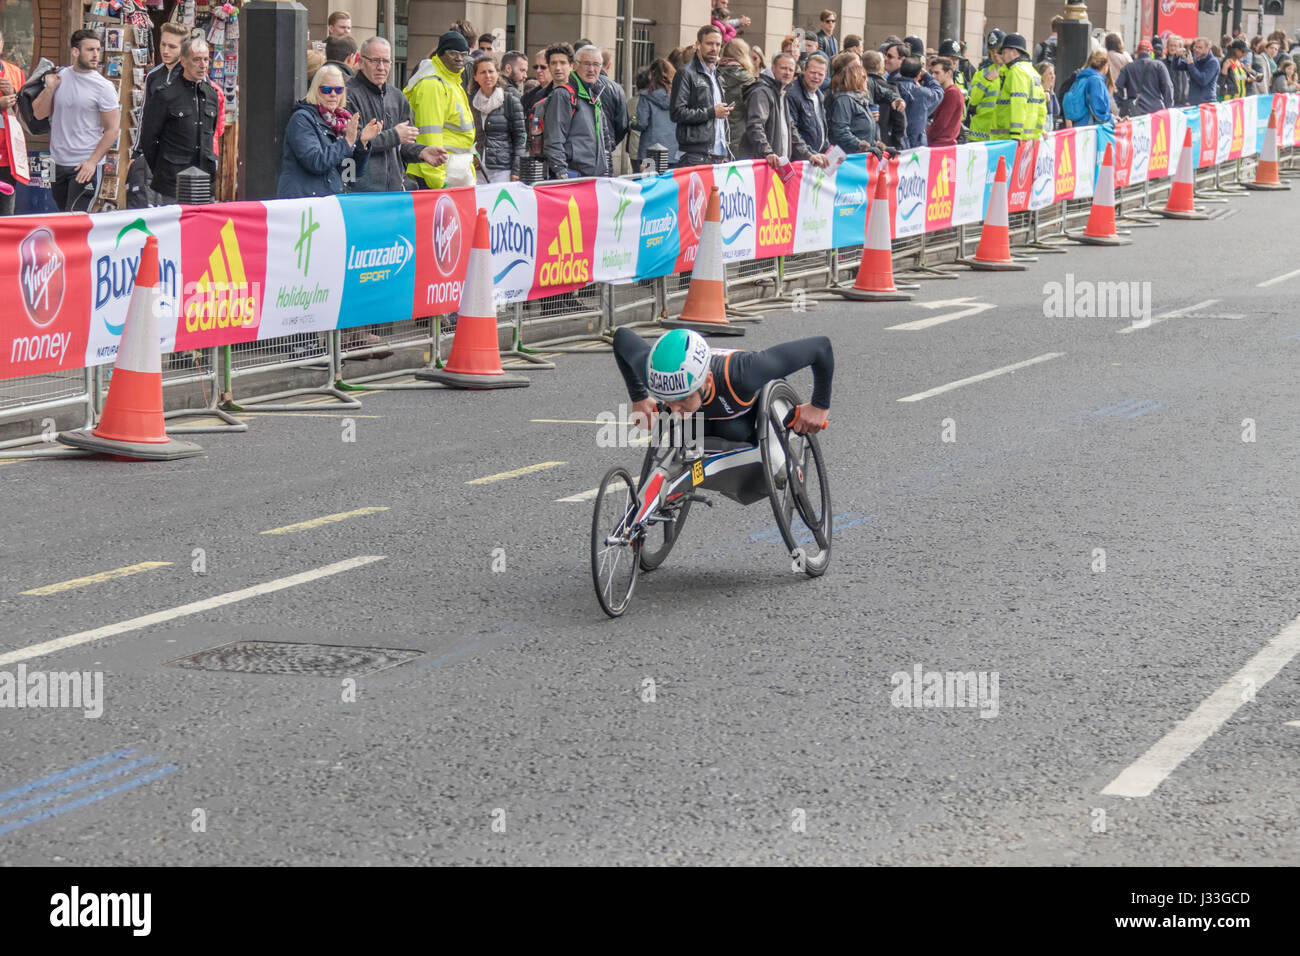 Susannah Scaroni at the London Marathon 2017 - Stock Image